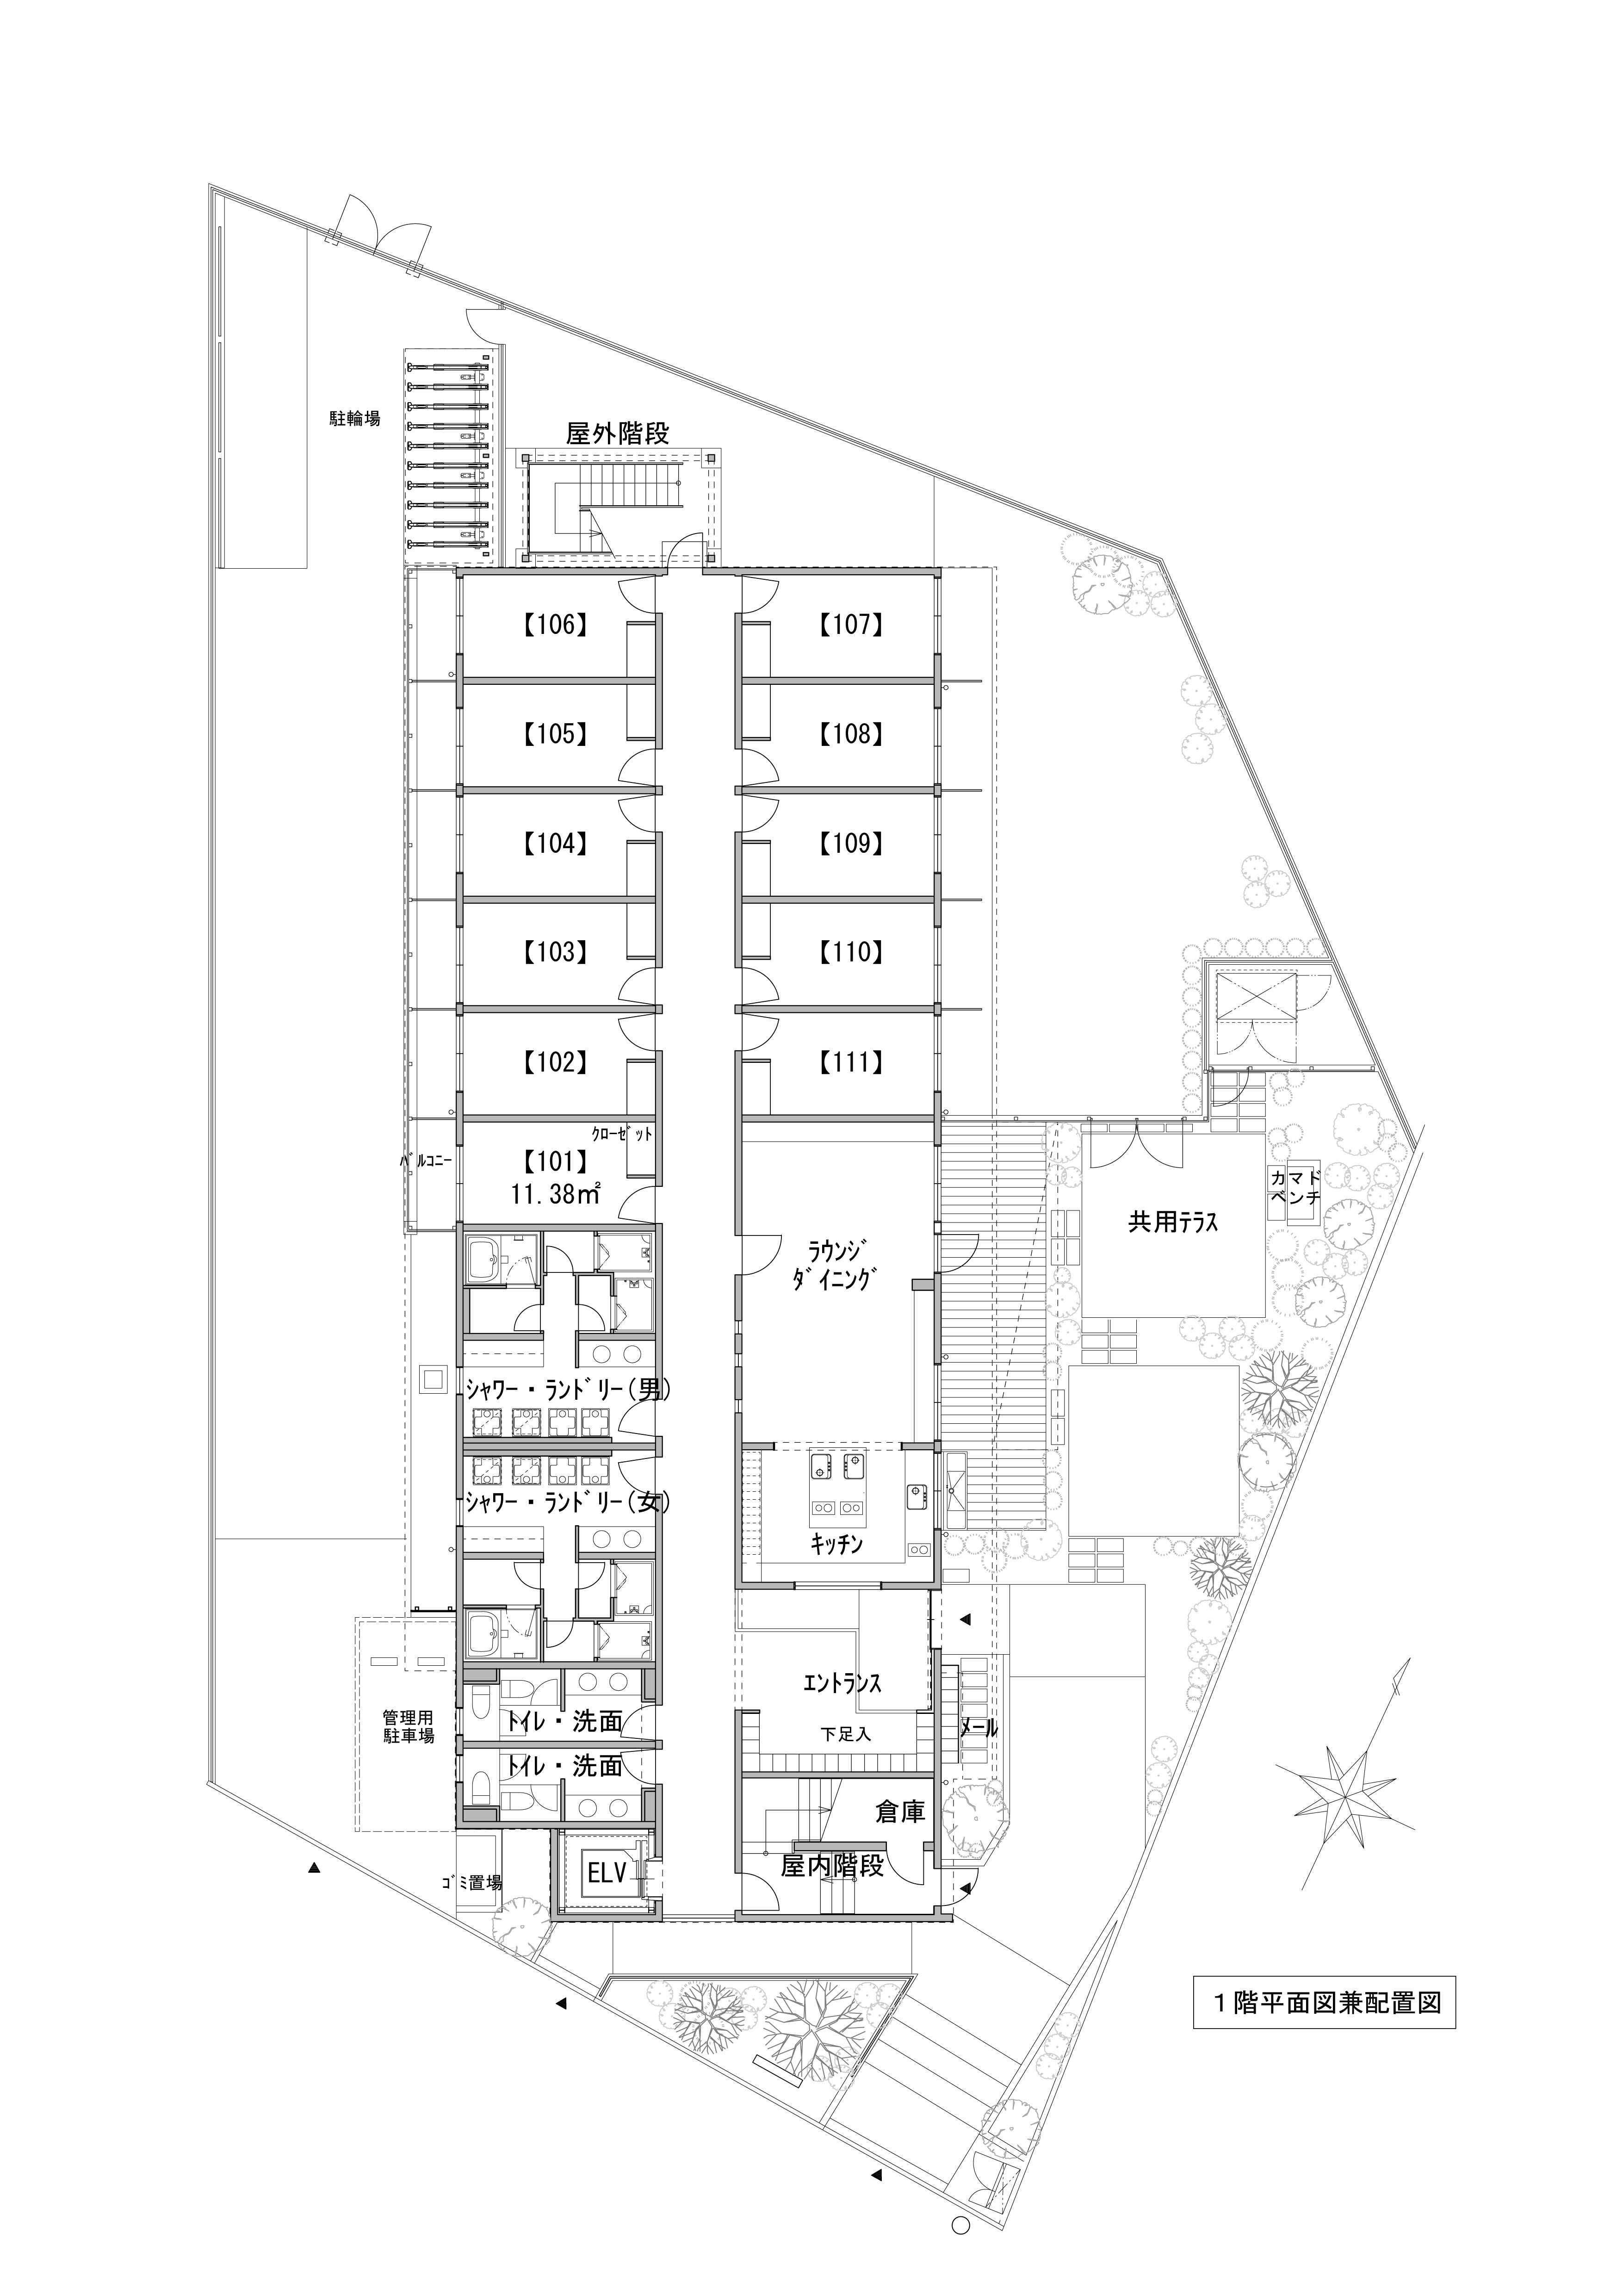 guesthouse sharehouse Social美宅 上北澤 floorplan1